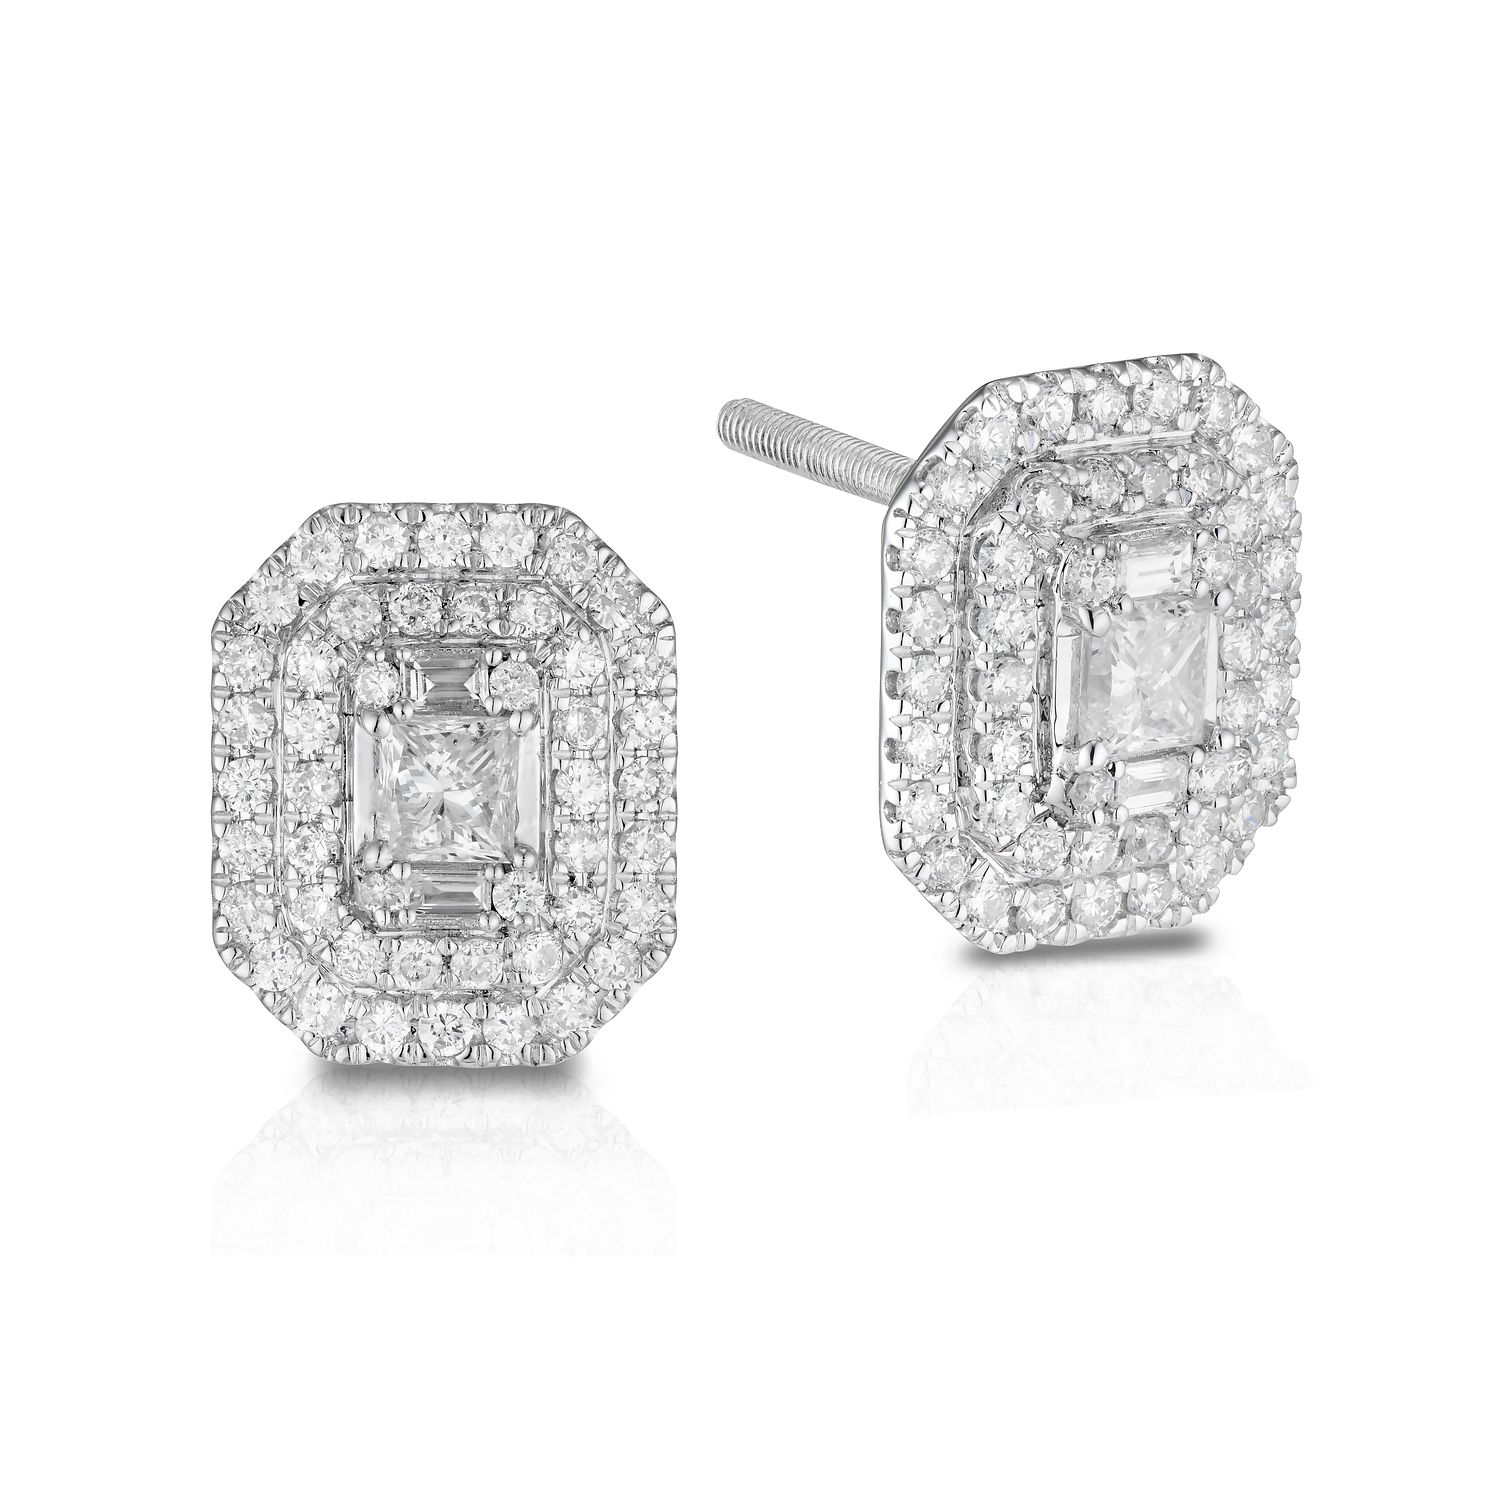 18ct White Gold 1ct Diamond Double Halo Princess Earrings - Product number 1035002